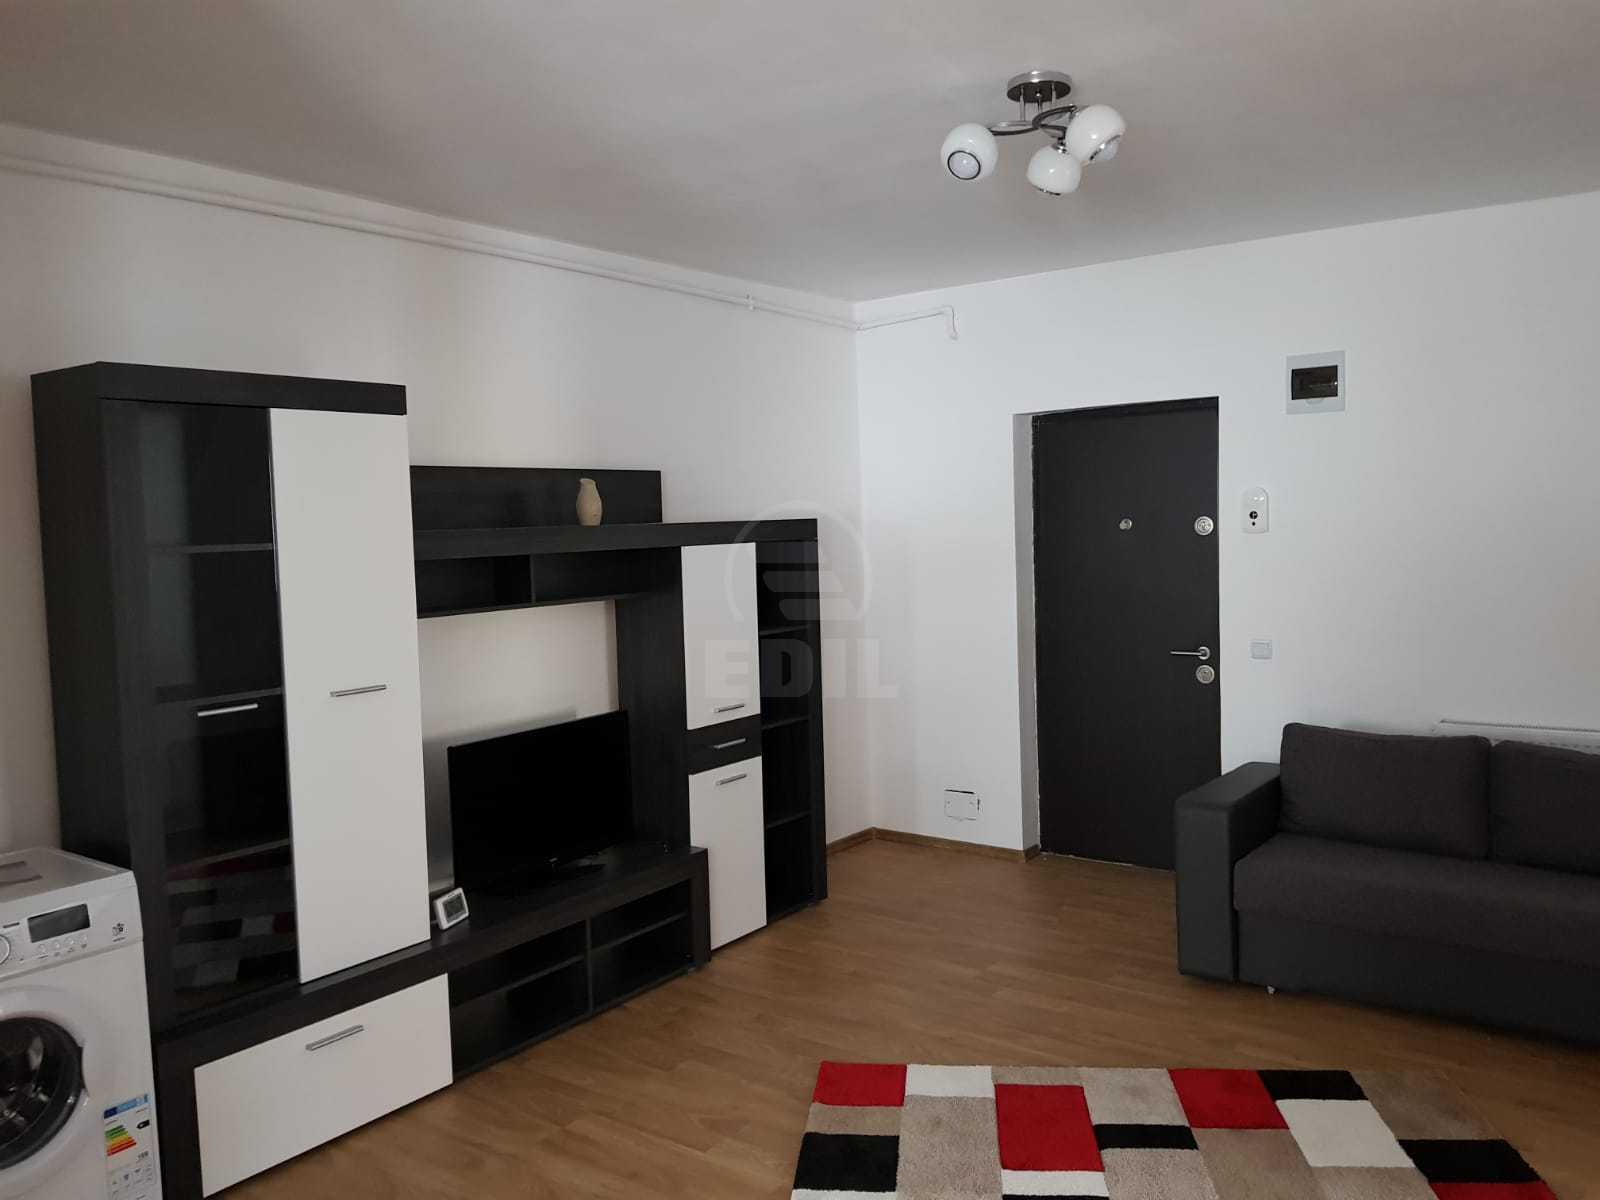 Apartment for rent 3 rooms, APCJ232650FLO-2